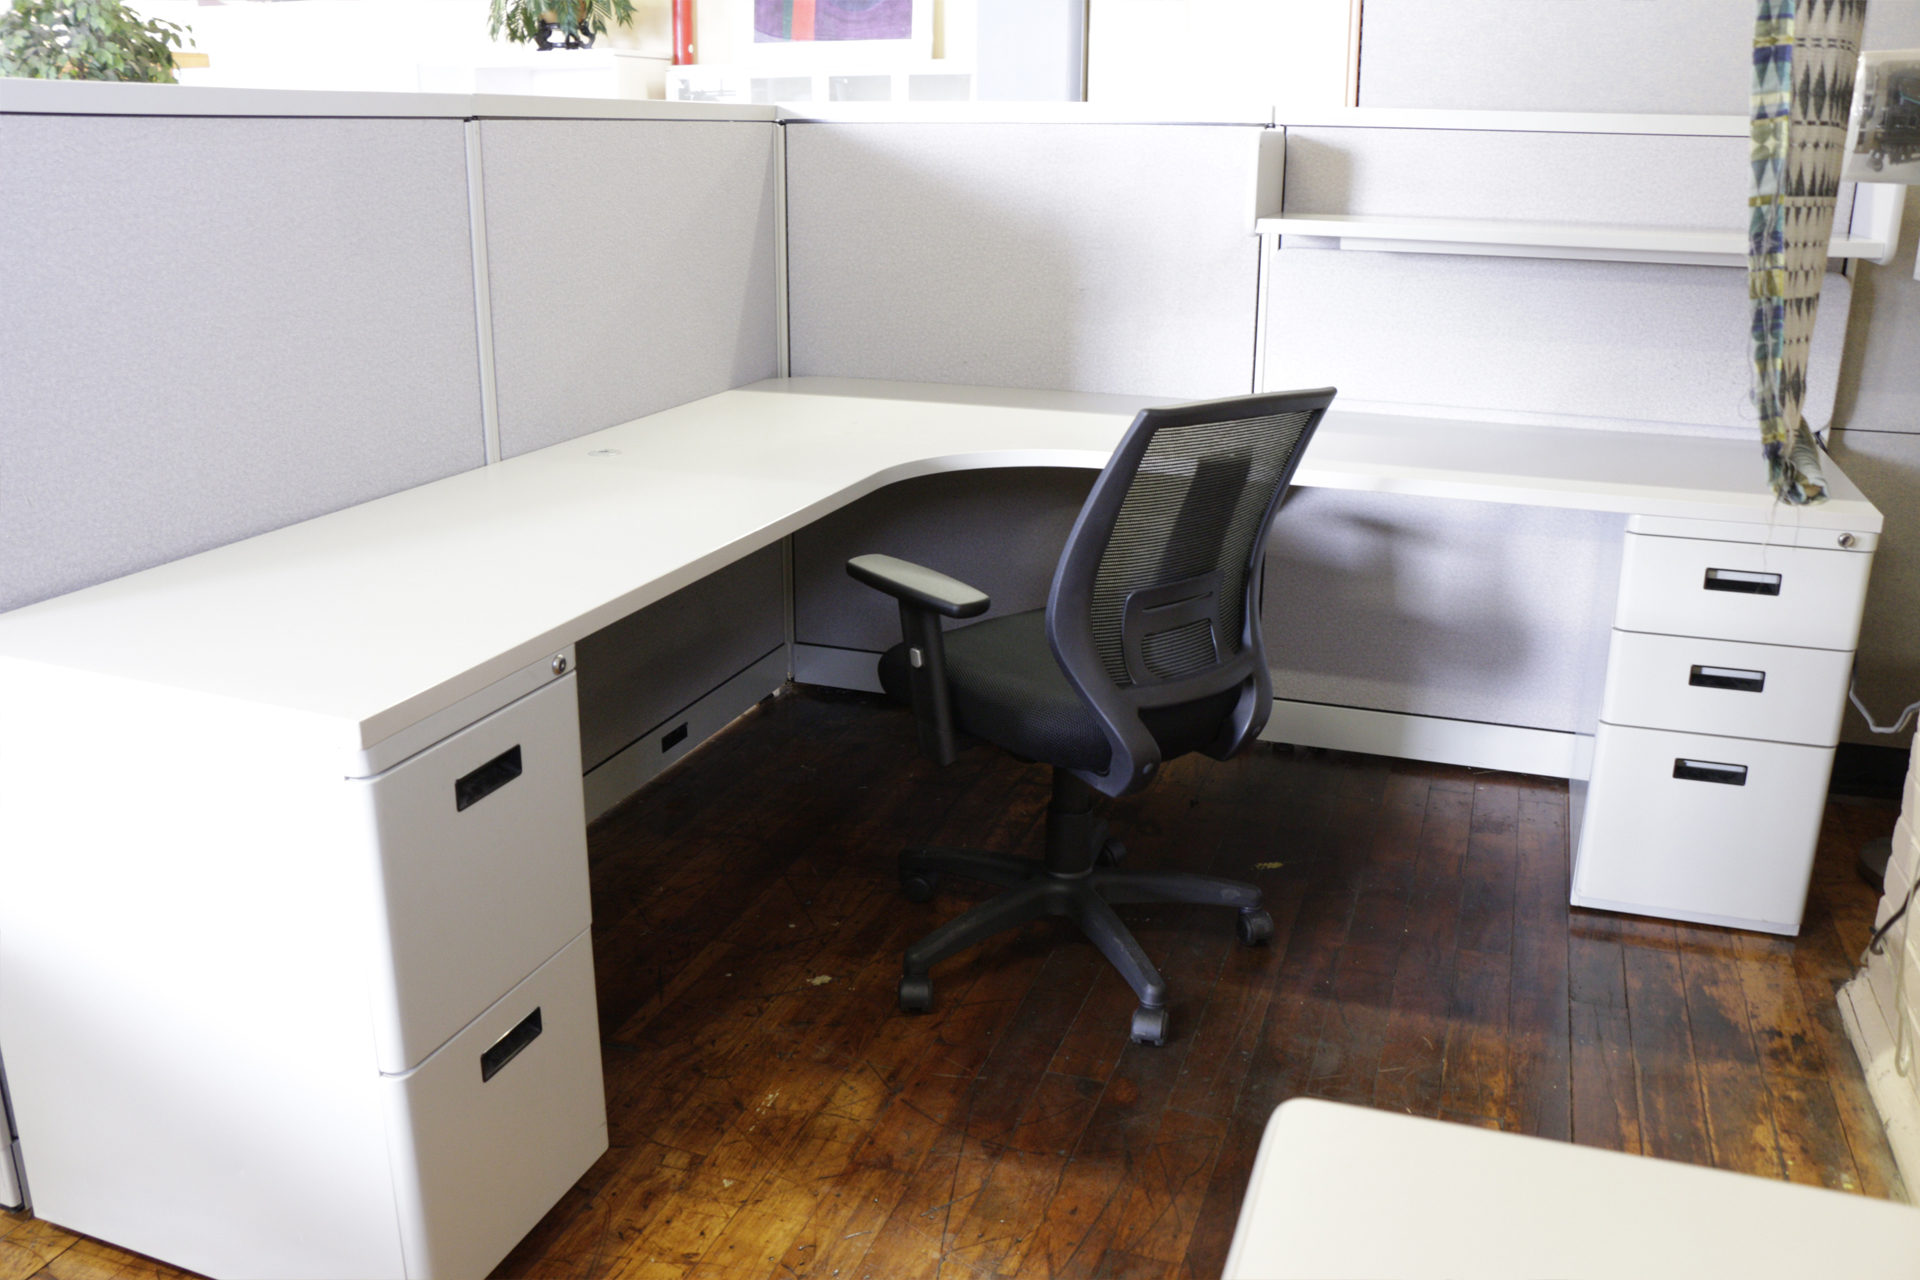 peartreeofficefurniture_peartreeofficefurniture_2.jpg